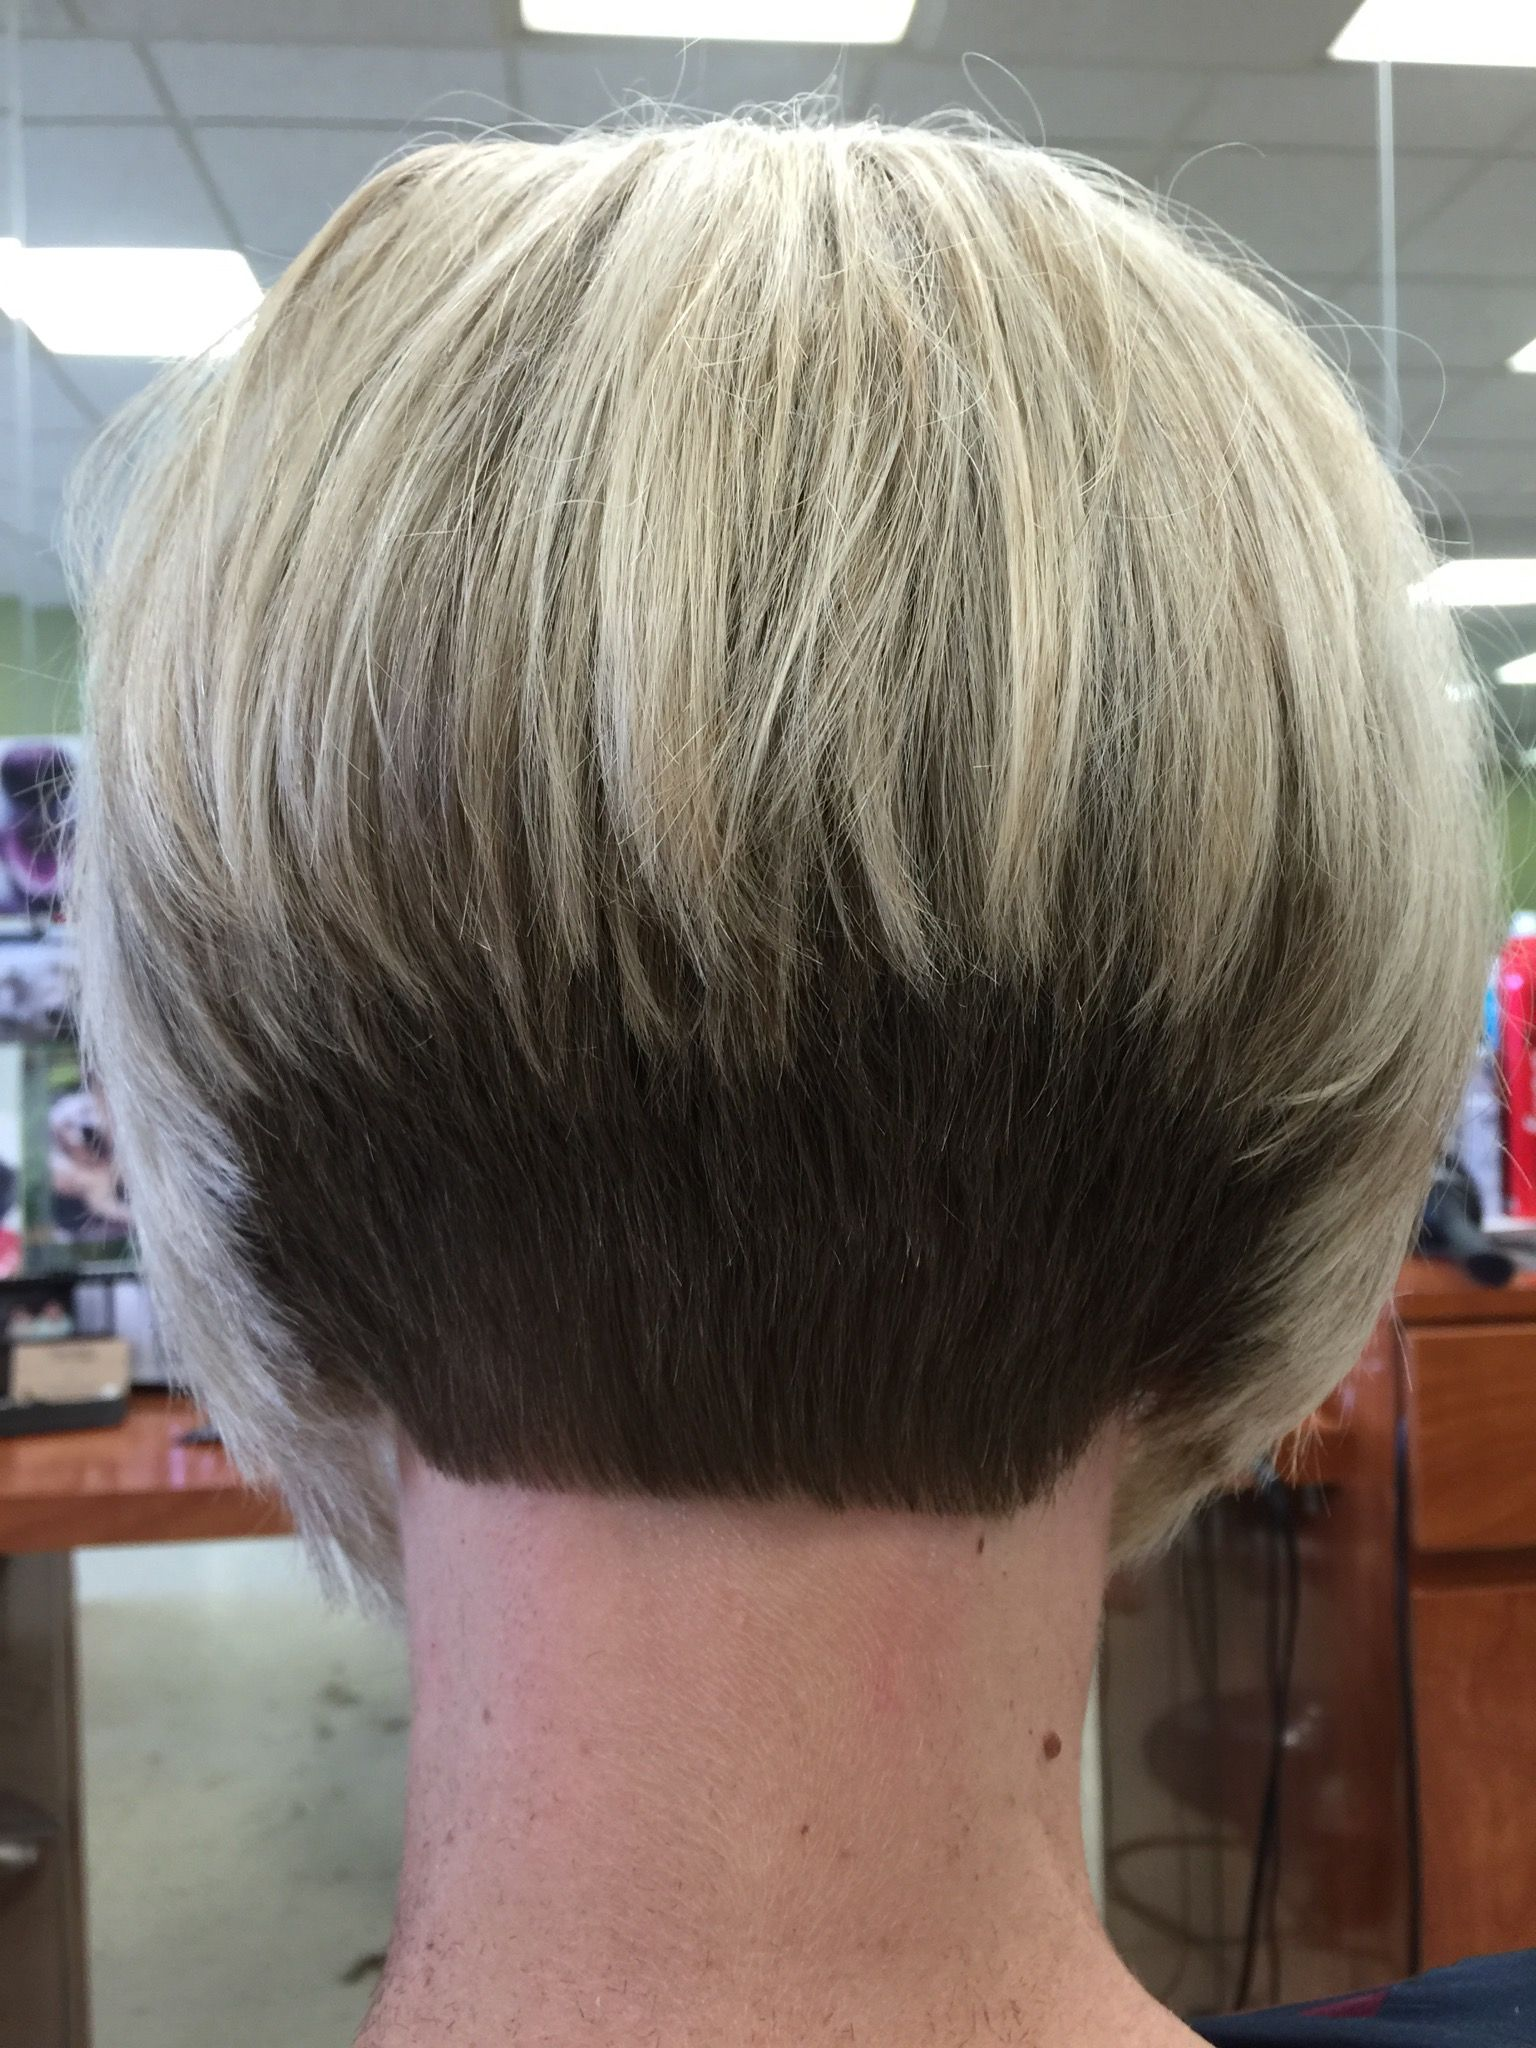 Best Hairstyle For 50 Year Old Woman | Wedge Hairstyles ...